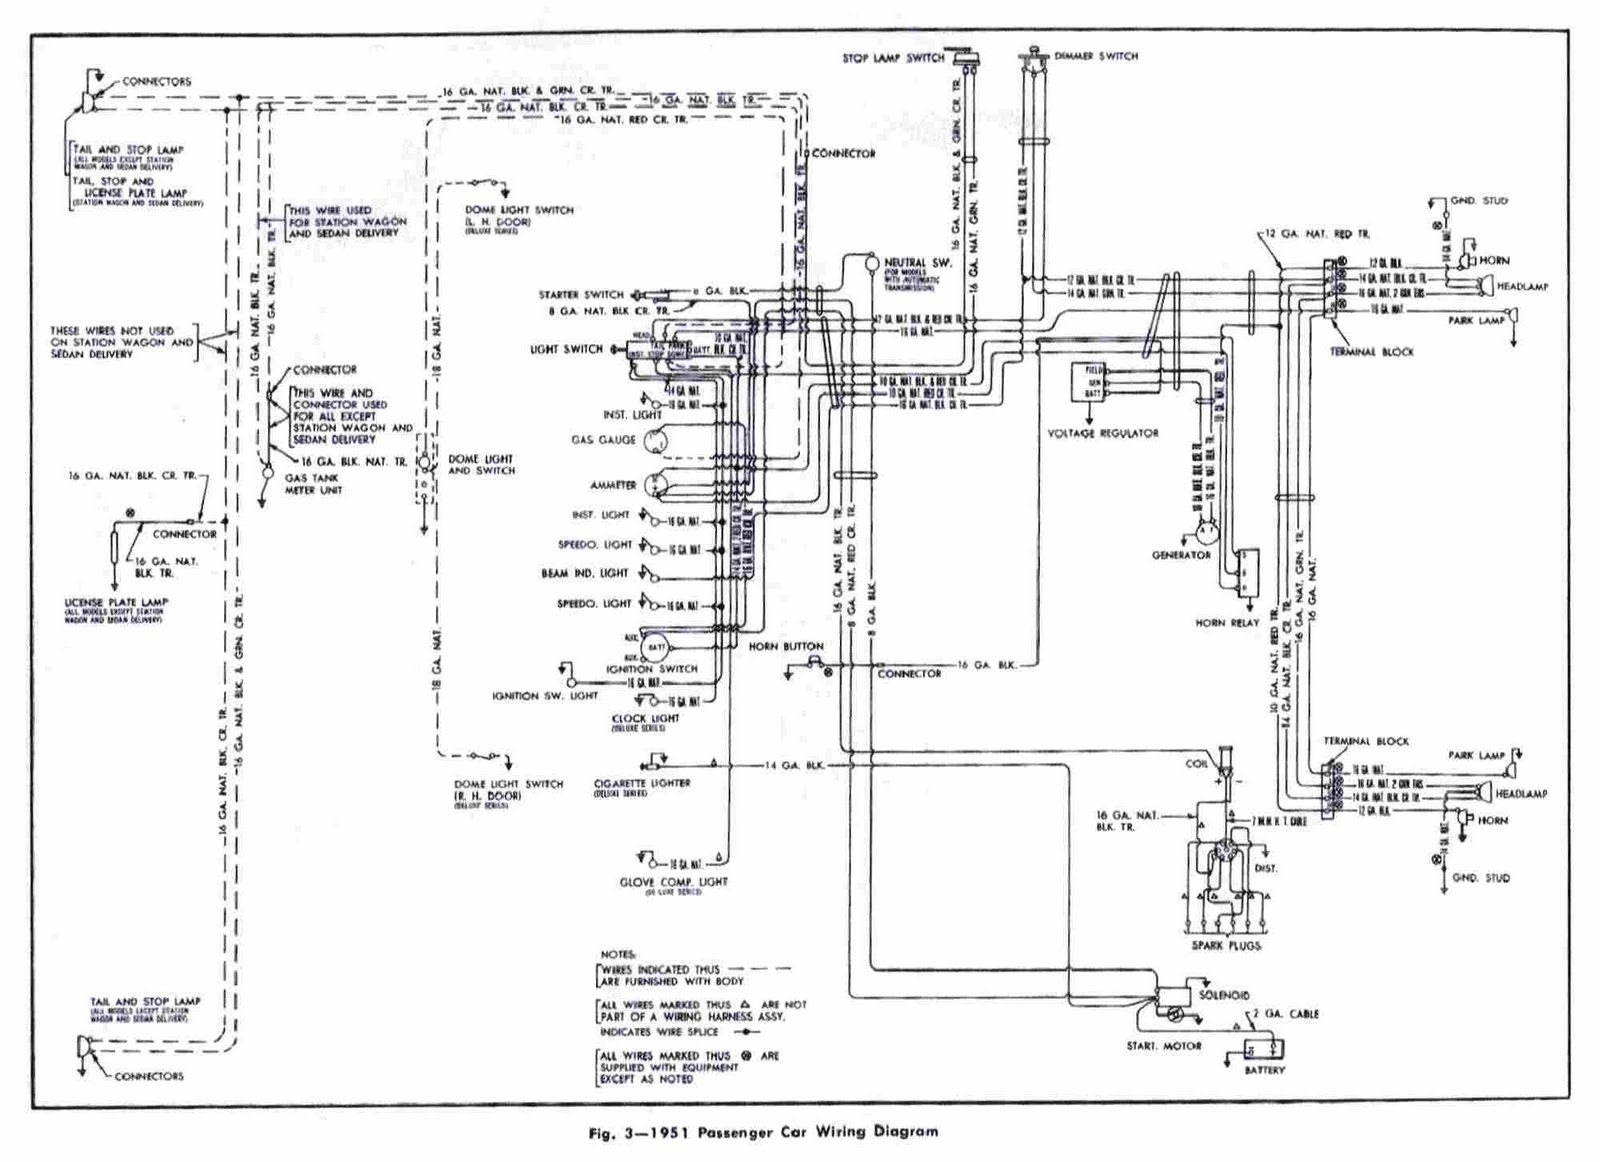 Chevrolet Passenger Car 1951 Wiring Diagram | All about